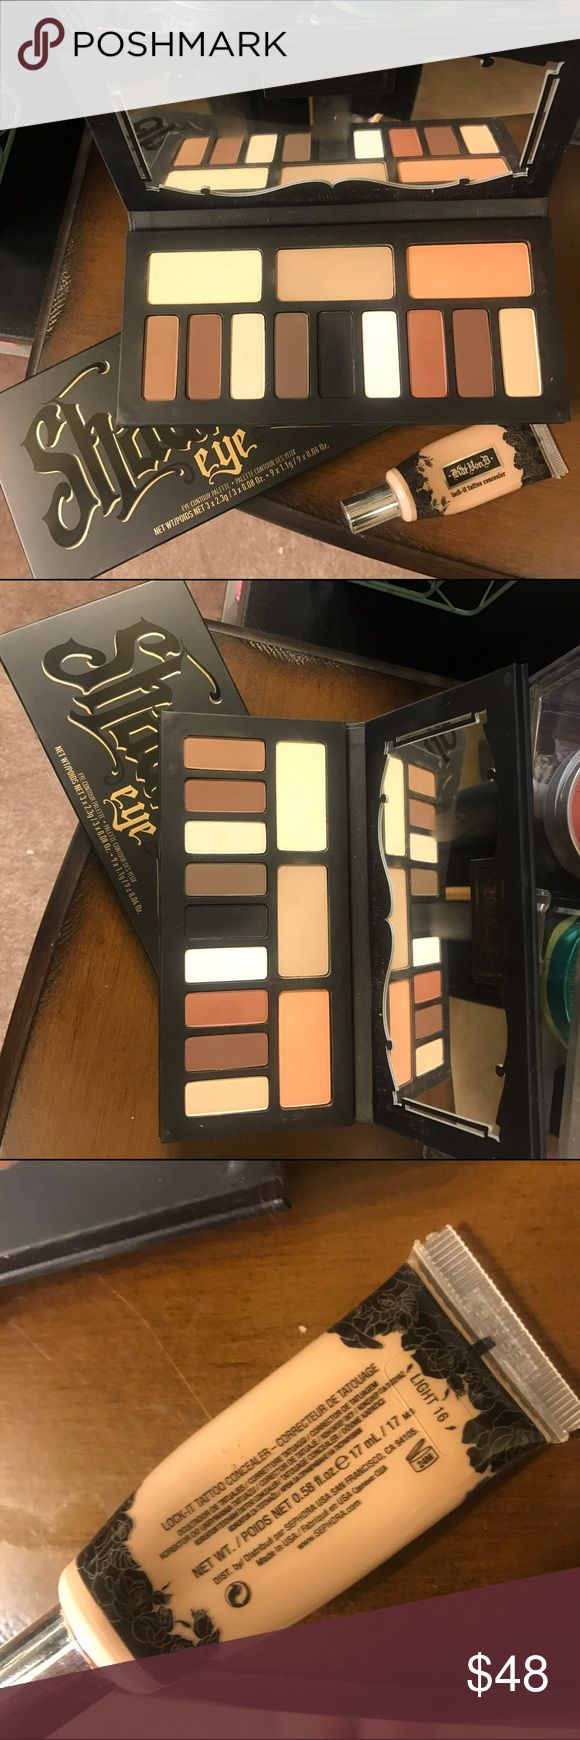 Kat  Von D Shade and Light Palette/ Concealer Bundle of kat von d shade and light eye shadow palette and lock it tattoo concealer in light 16. Palette very lightly used (some colors untouched) Kat Von D Makeup Eyeshadow